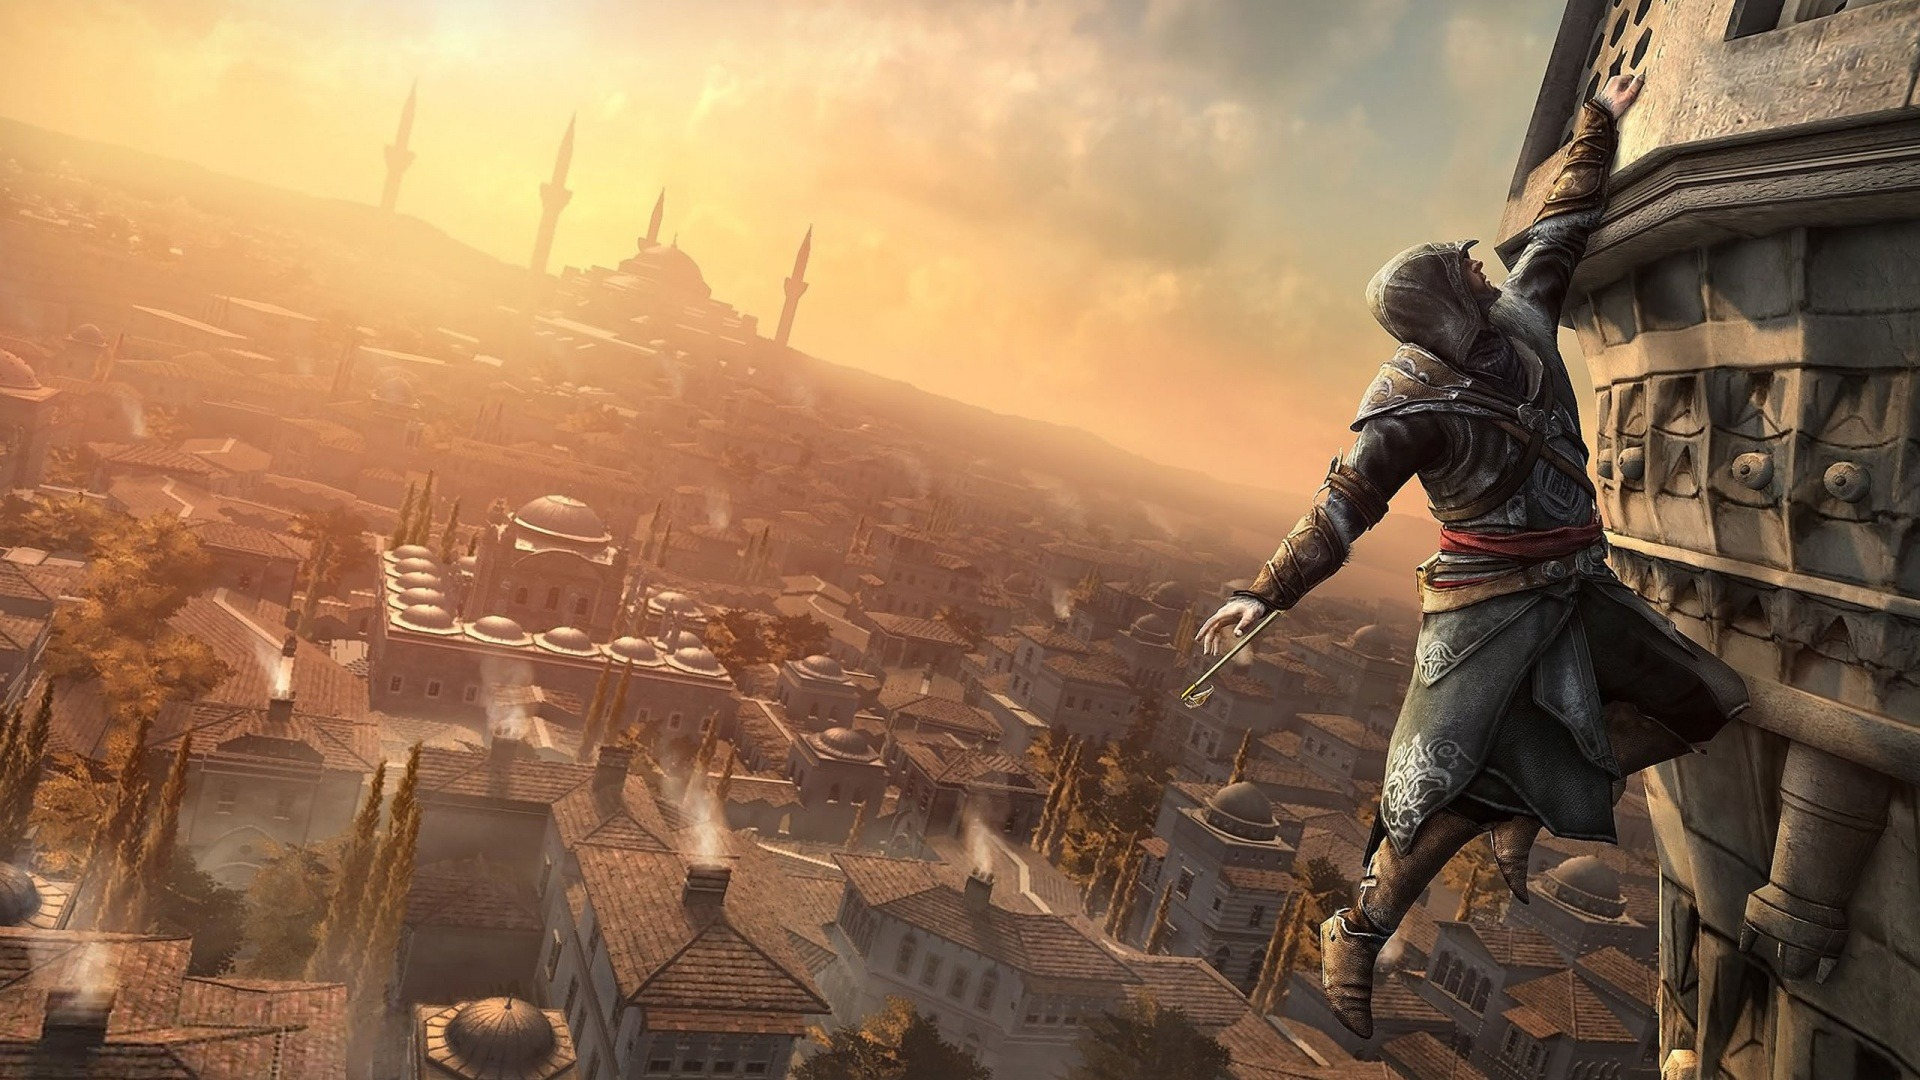 Fond D 233 Cran Du Jeu Assassin S Creed Revelations